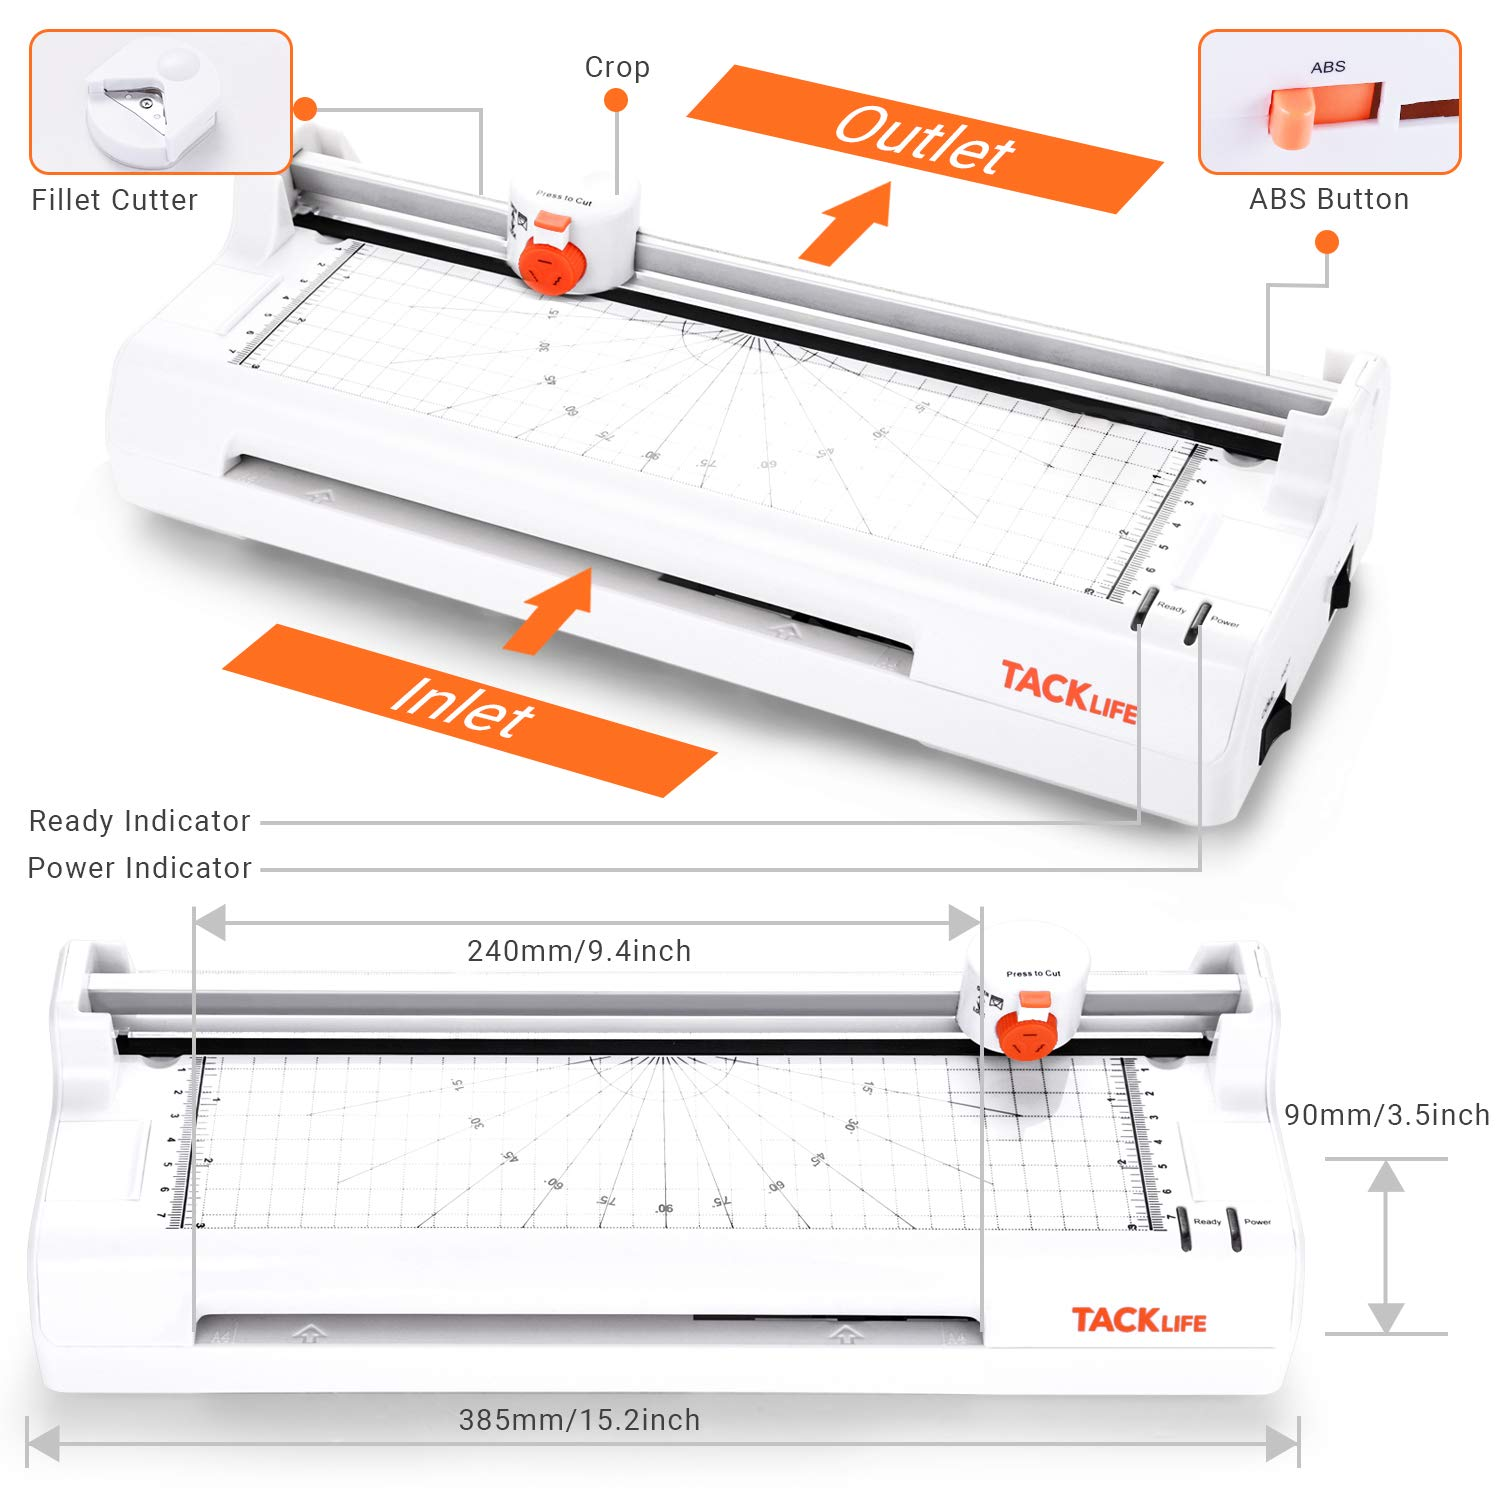 20 Laminator Pouches A4 A5 A6 A7 Hot and Cold Laminator with Paper Controller MTL02 ABS Cutter Laminator for Home Office Mini Laminating Machine Laminating Speed 330mm Laminator 2 Rollers